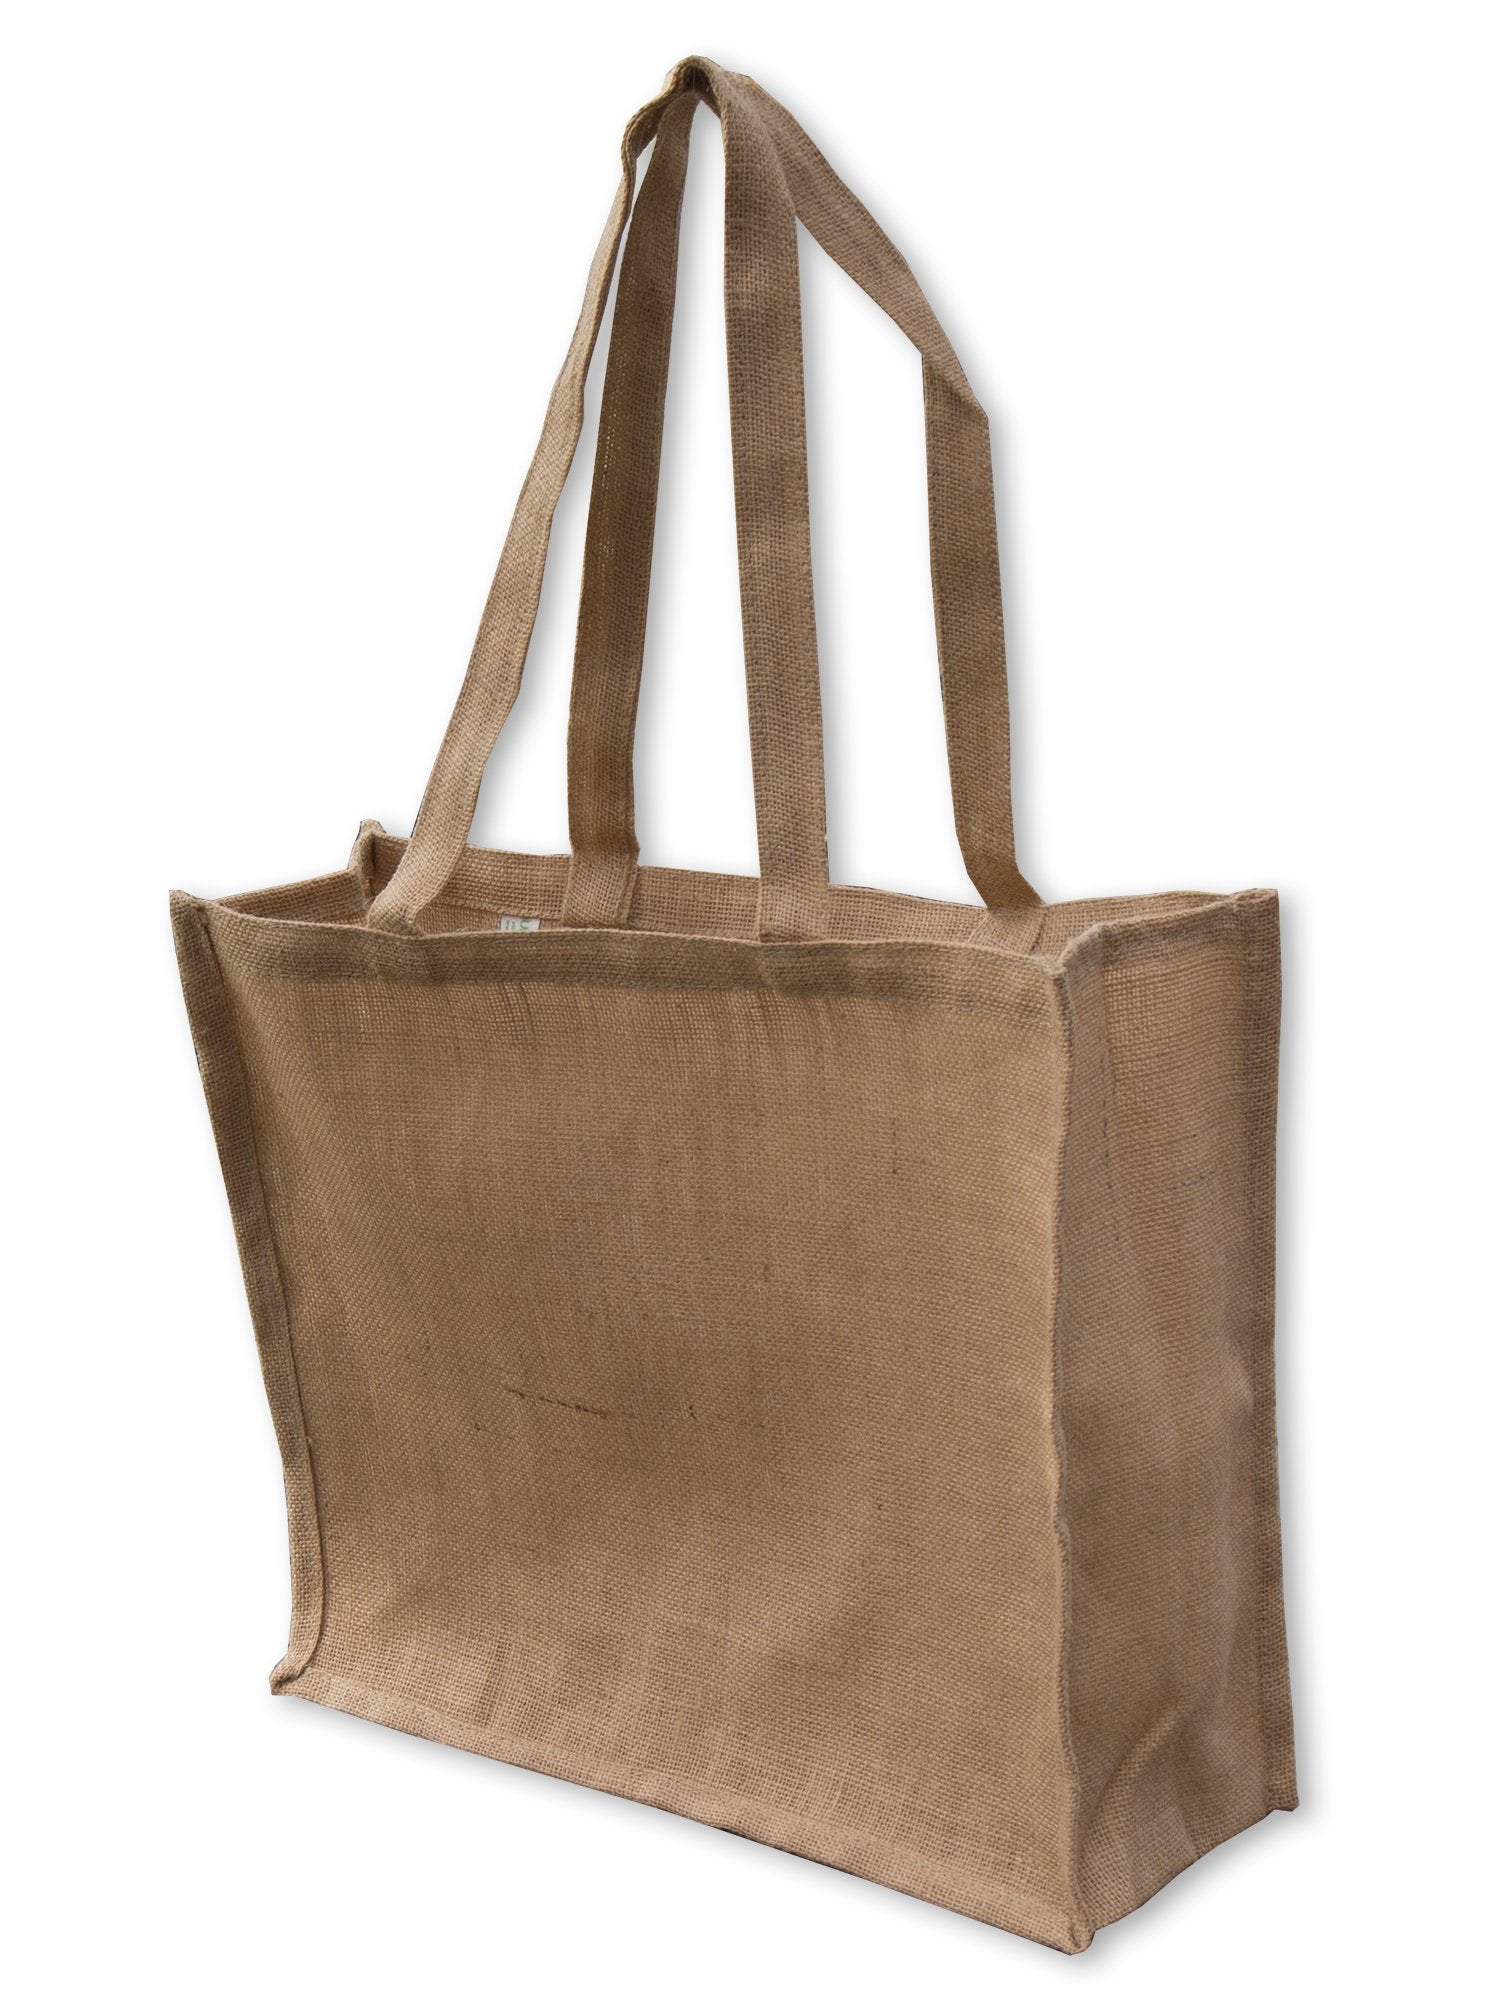 The Jute All Natural Tote